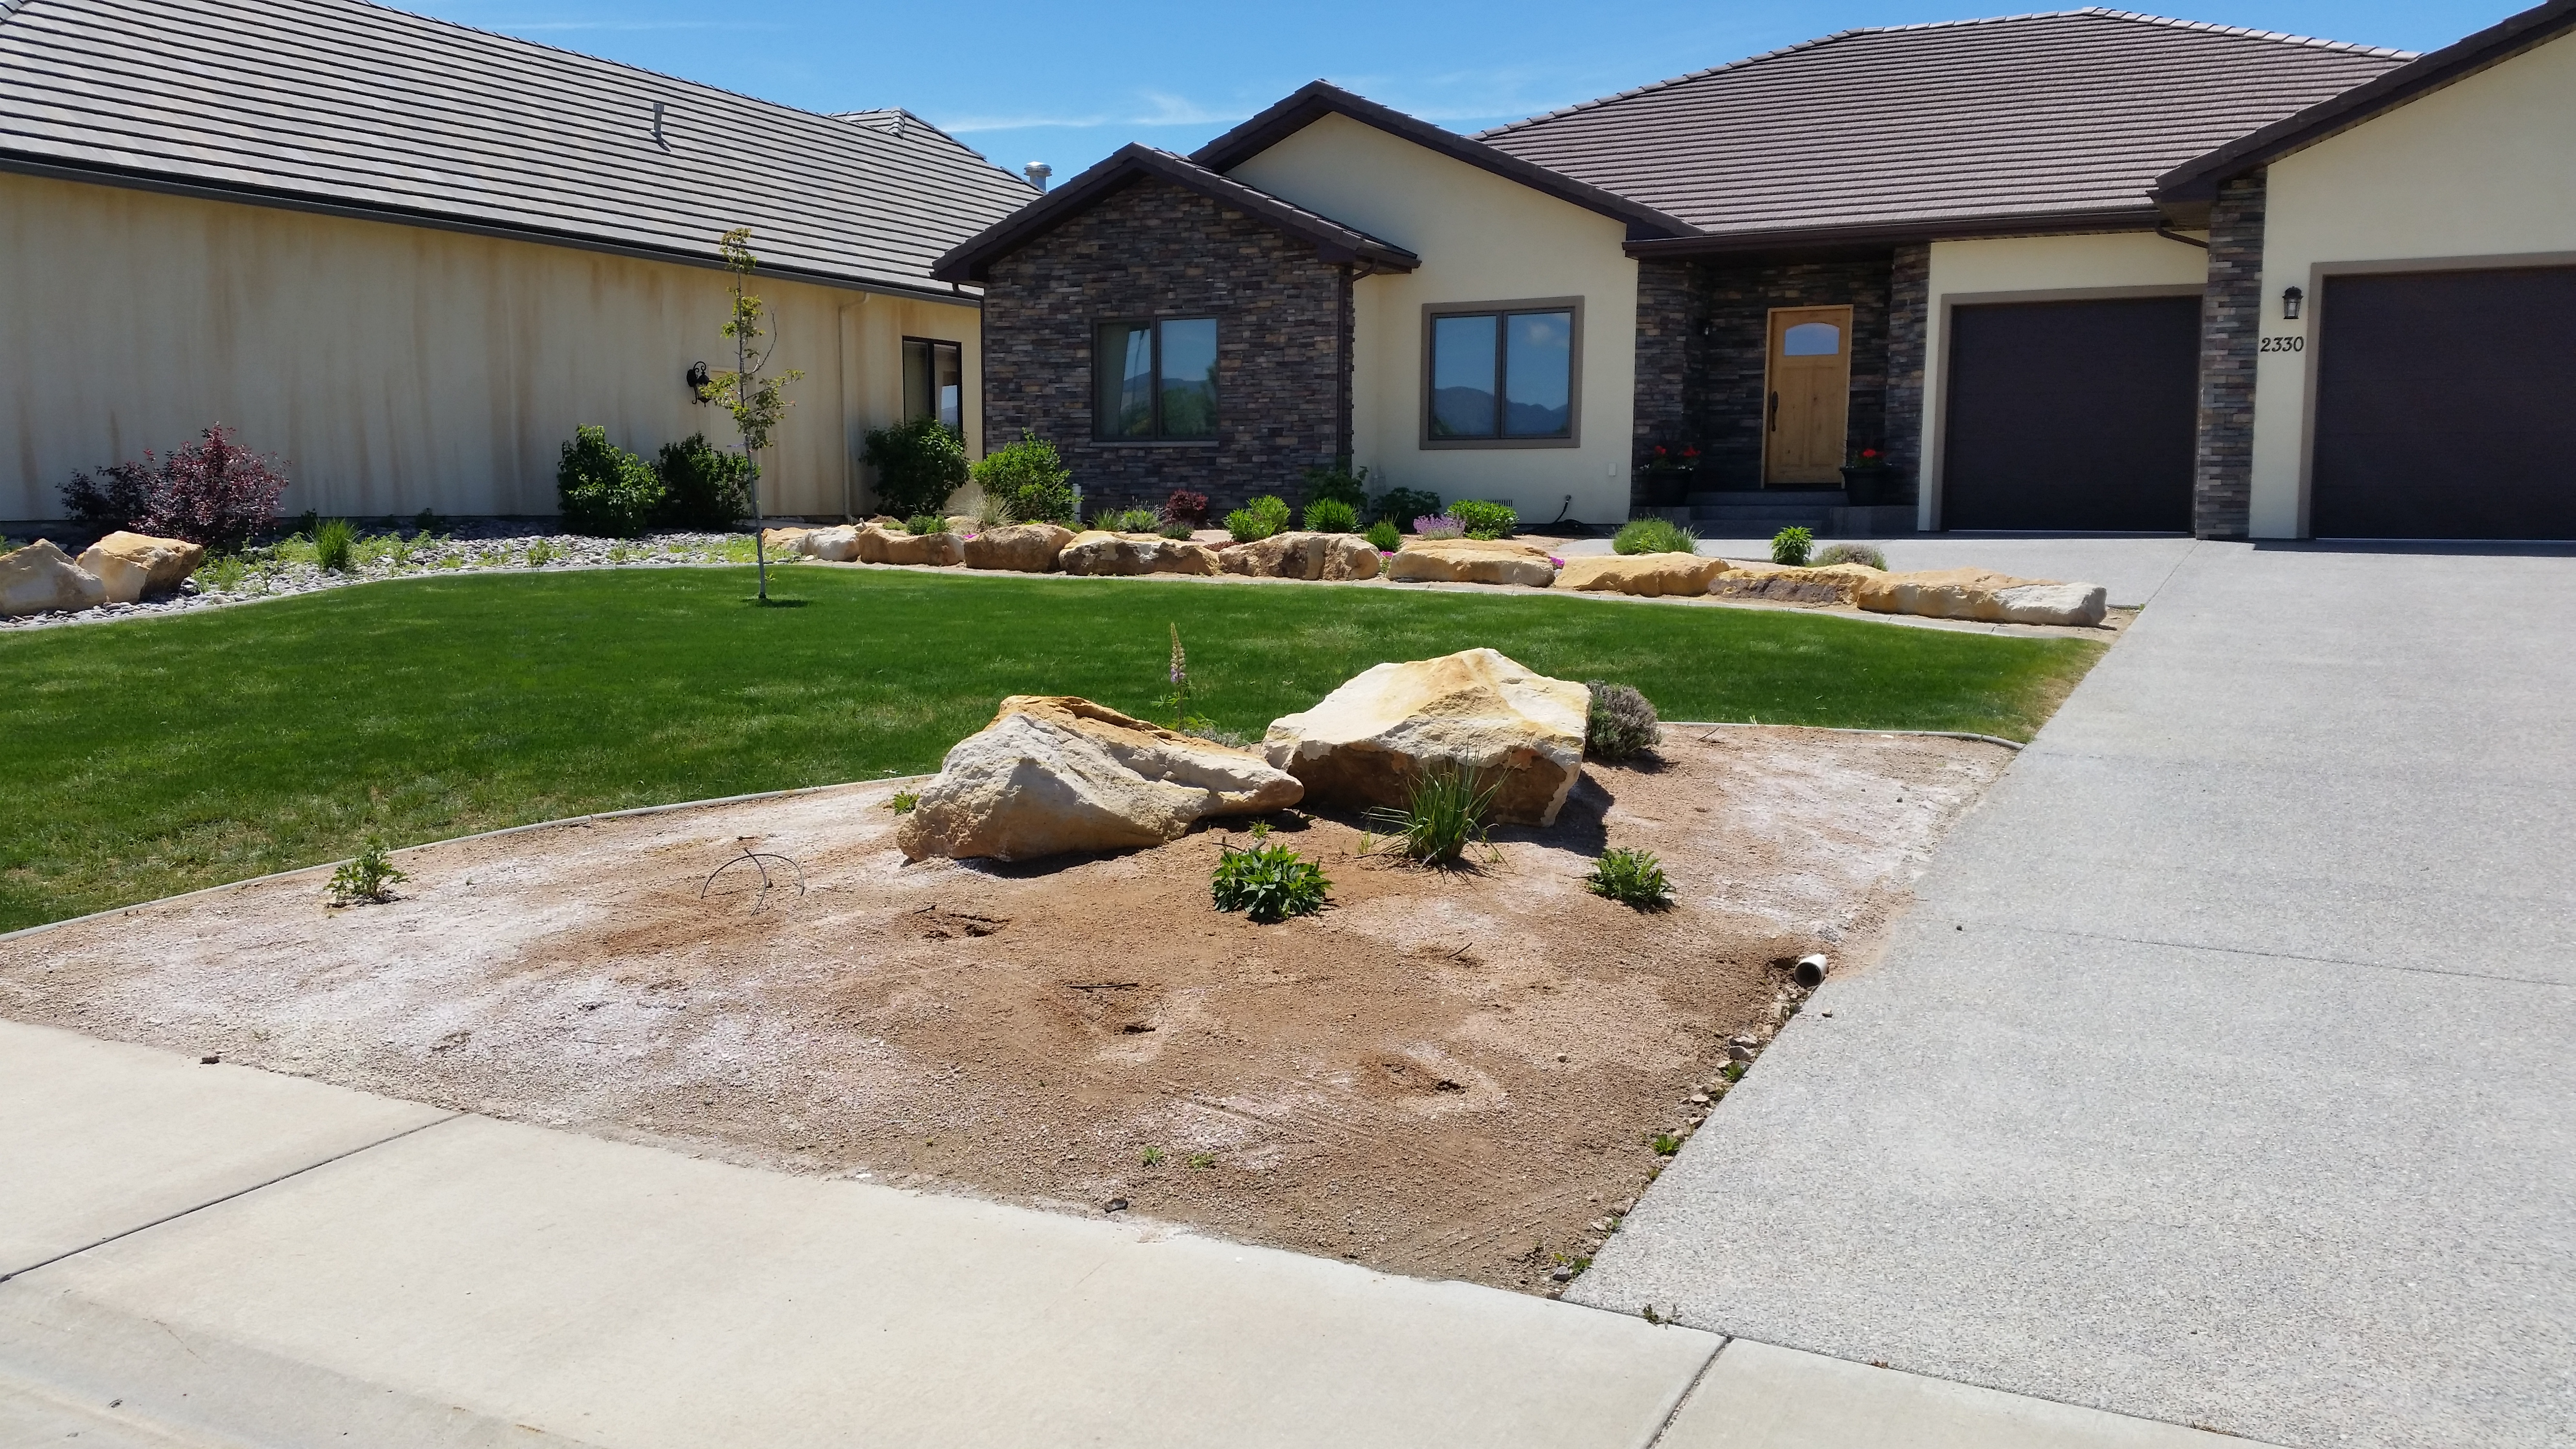 This Montrose Landscape Remodel Shows The Before And After Of Two Areas In Front Yard Adding Drought Tolerant Shrubs Perennials Add Color